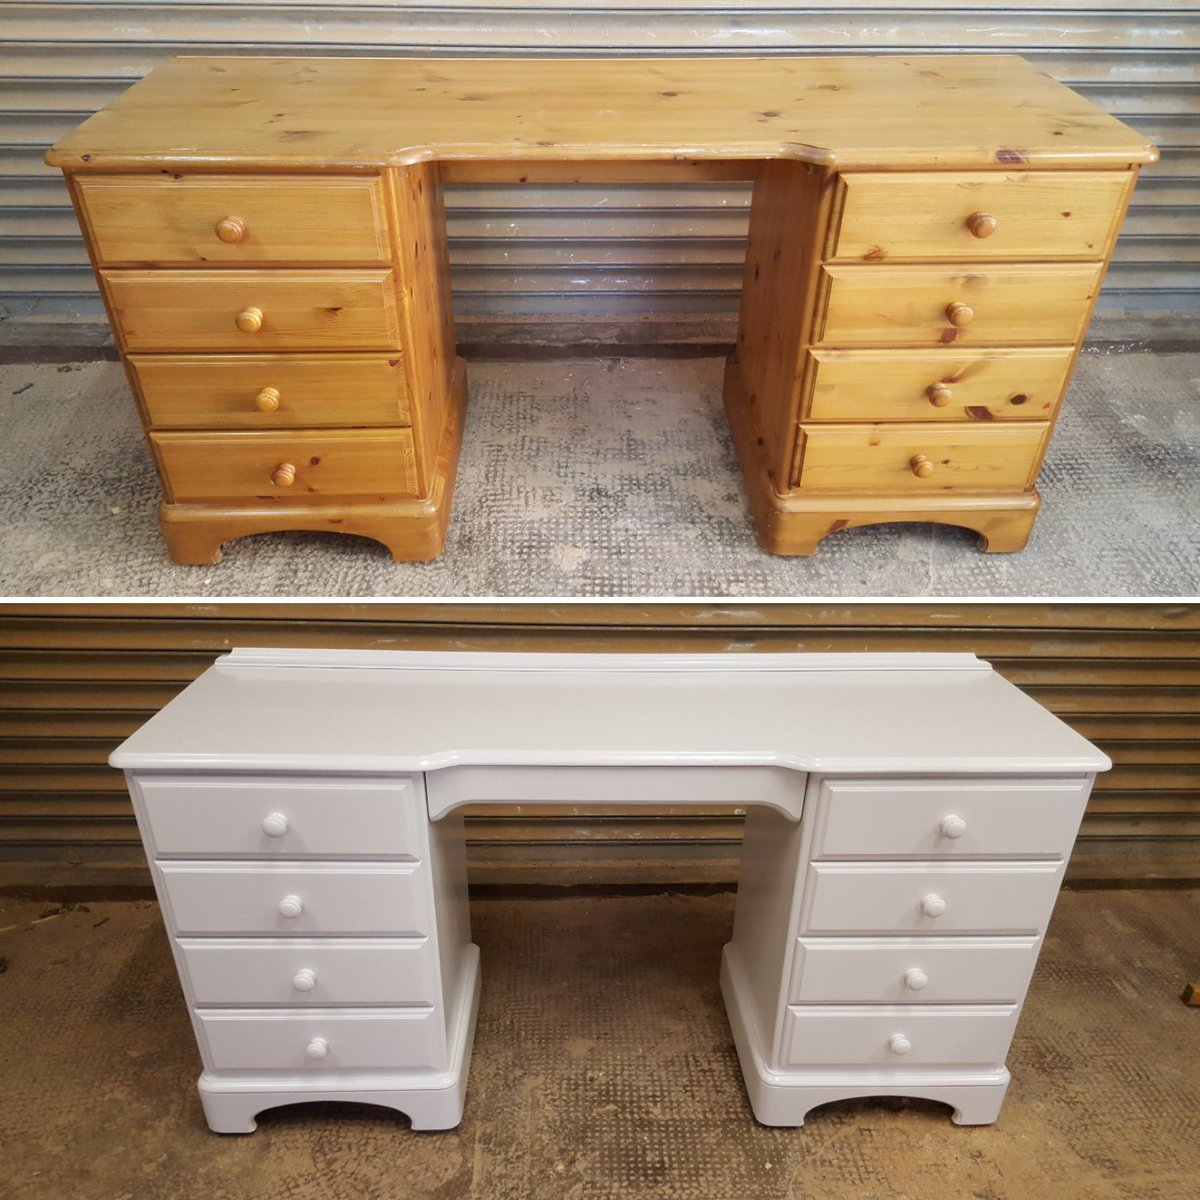 Pine Furniture Spray Painted In An Off White With A Semi Matt Finish.  Before U0026 After #pine #Pinefurniture #Furniture #bedroomfurniture #oldtonew  #Upcycled ...